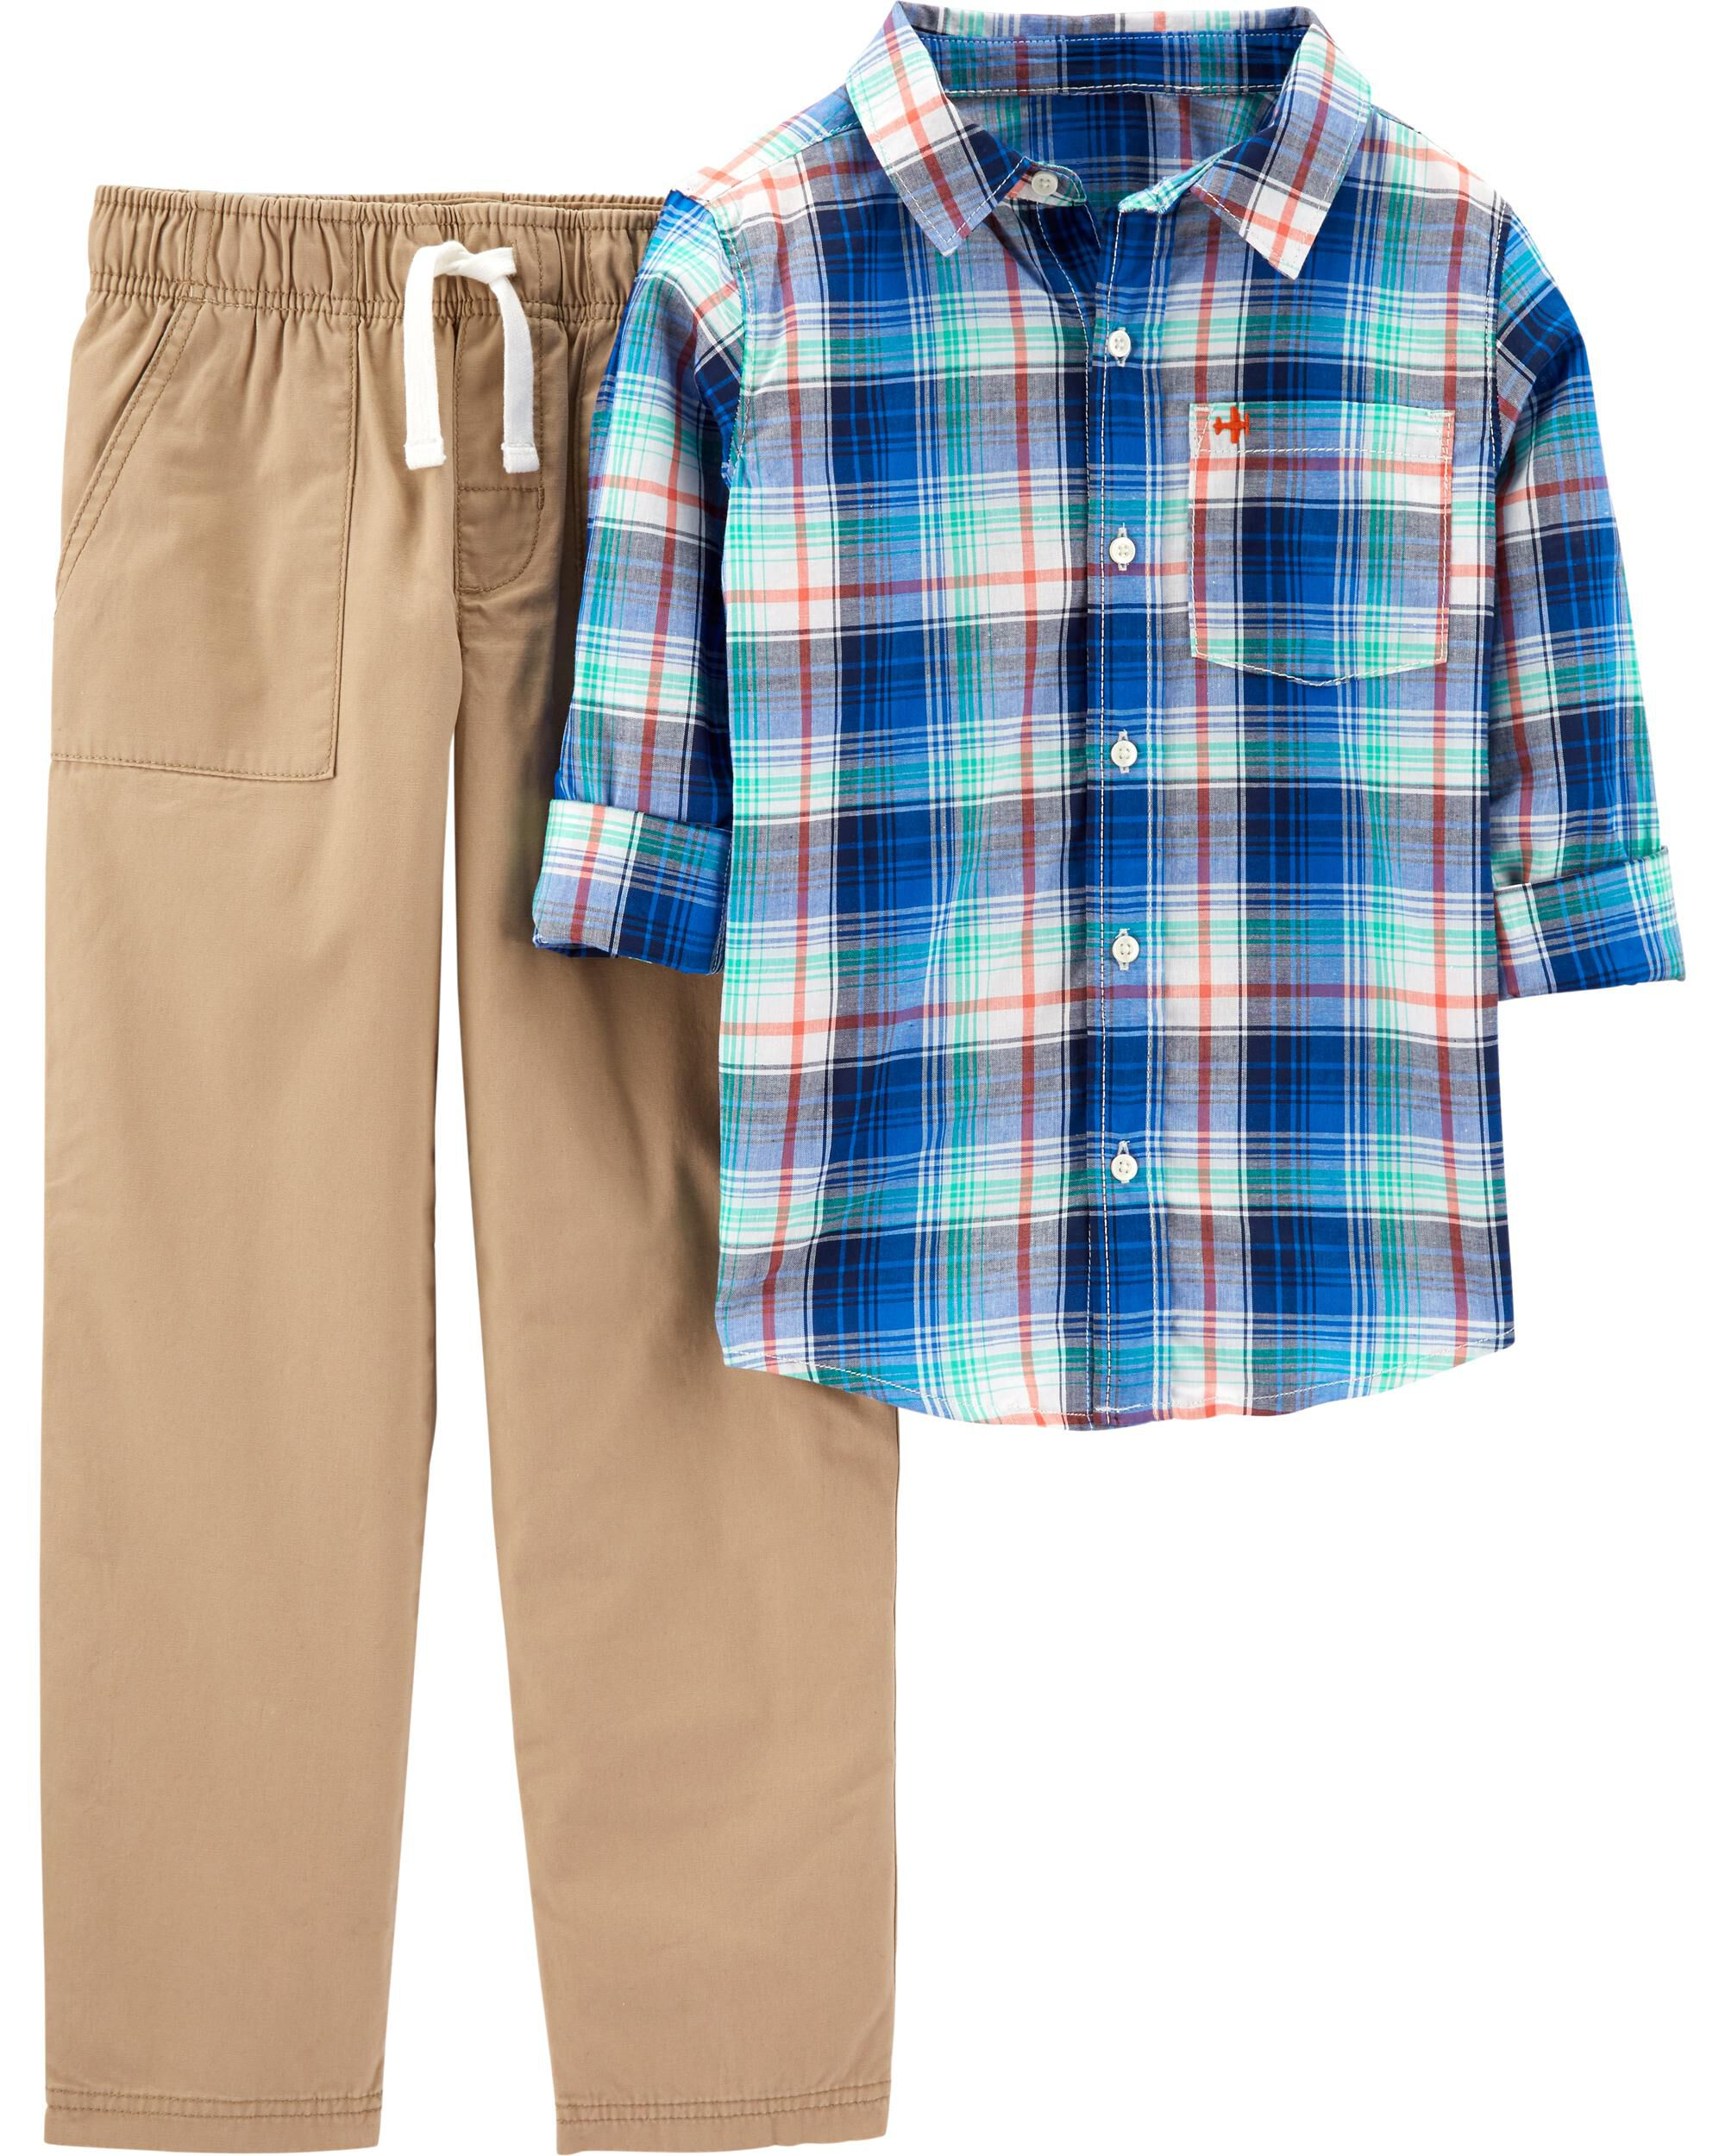 5 Kids Carters Boys Green Plaid Button Front Shorts